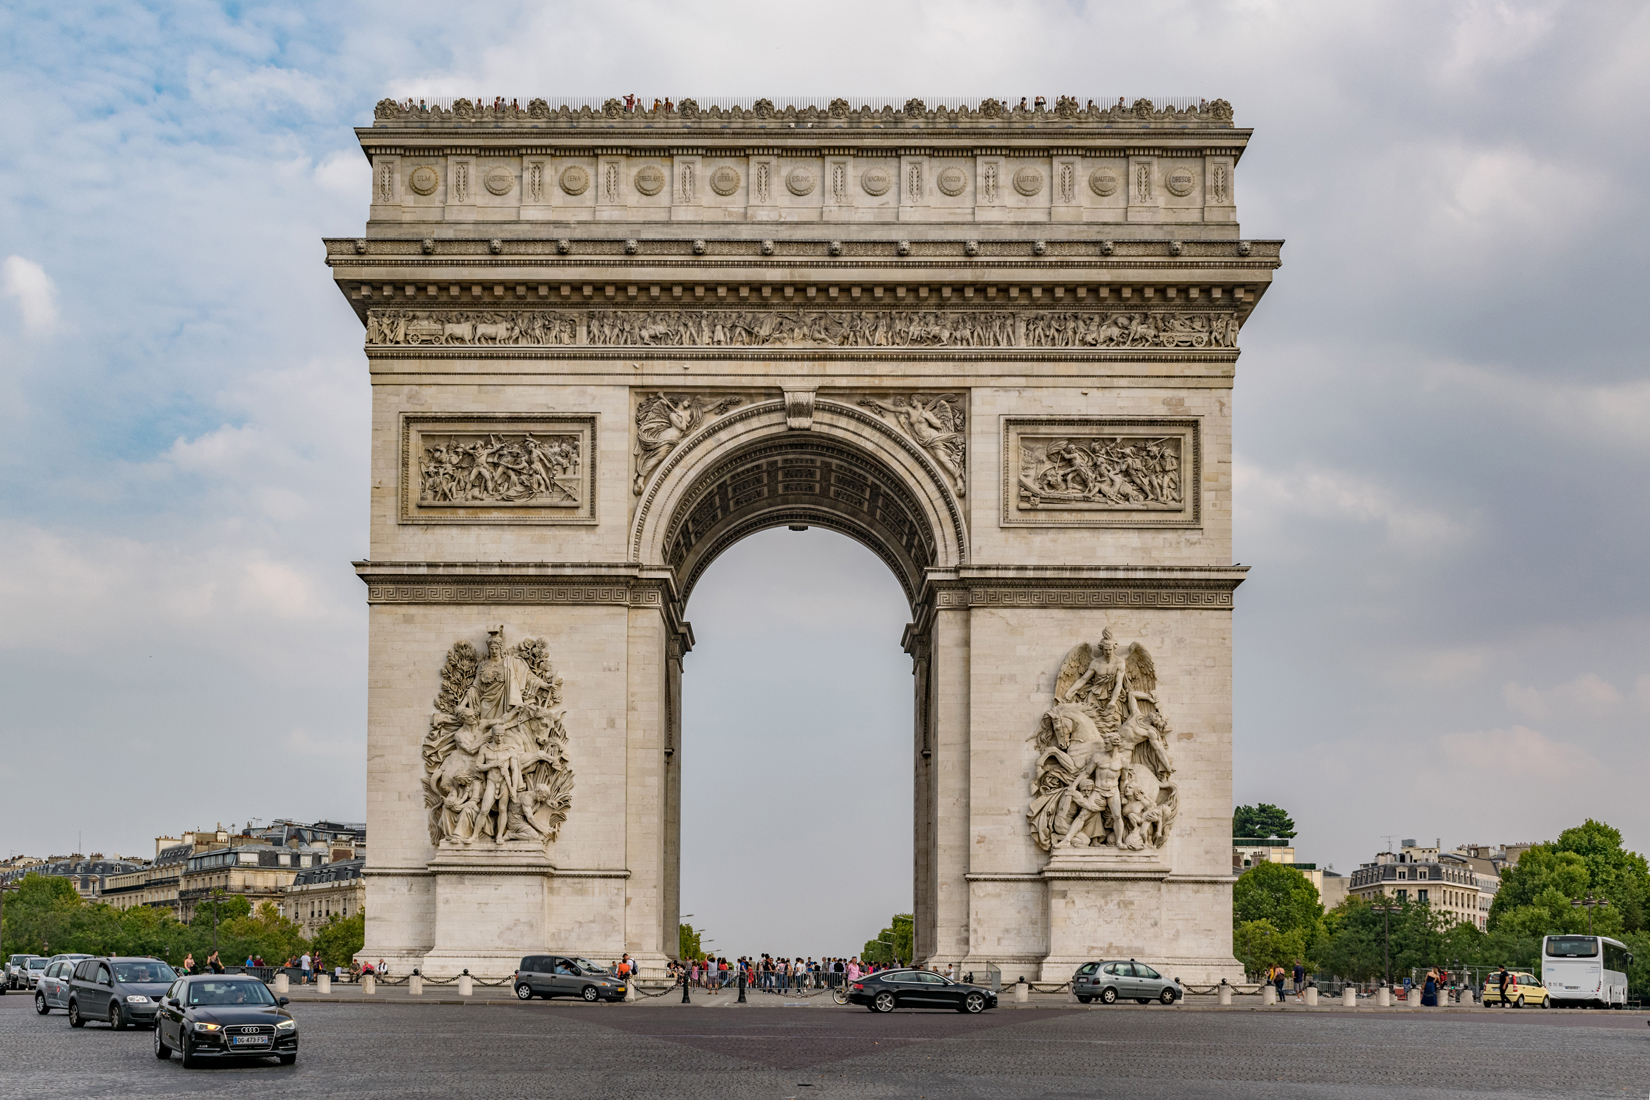 The Arc de Triomphe de l'Étoile